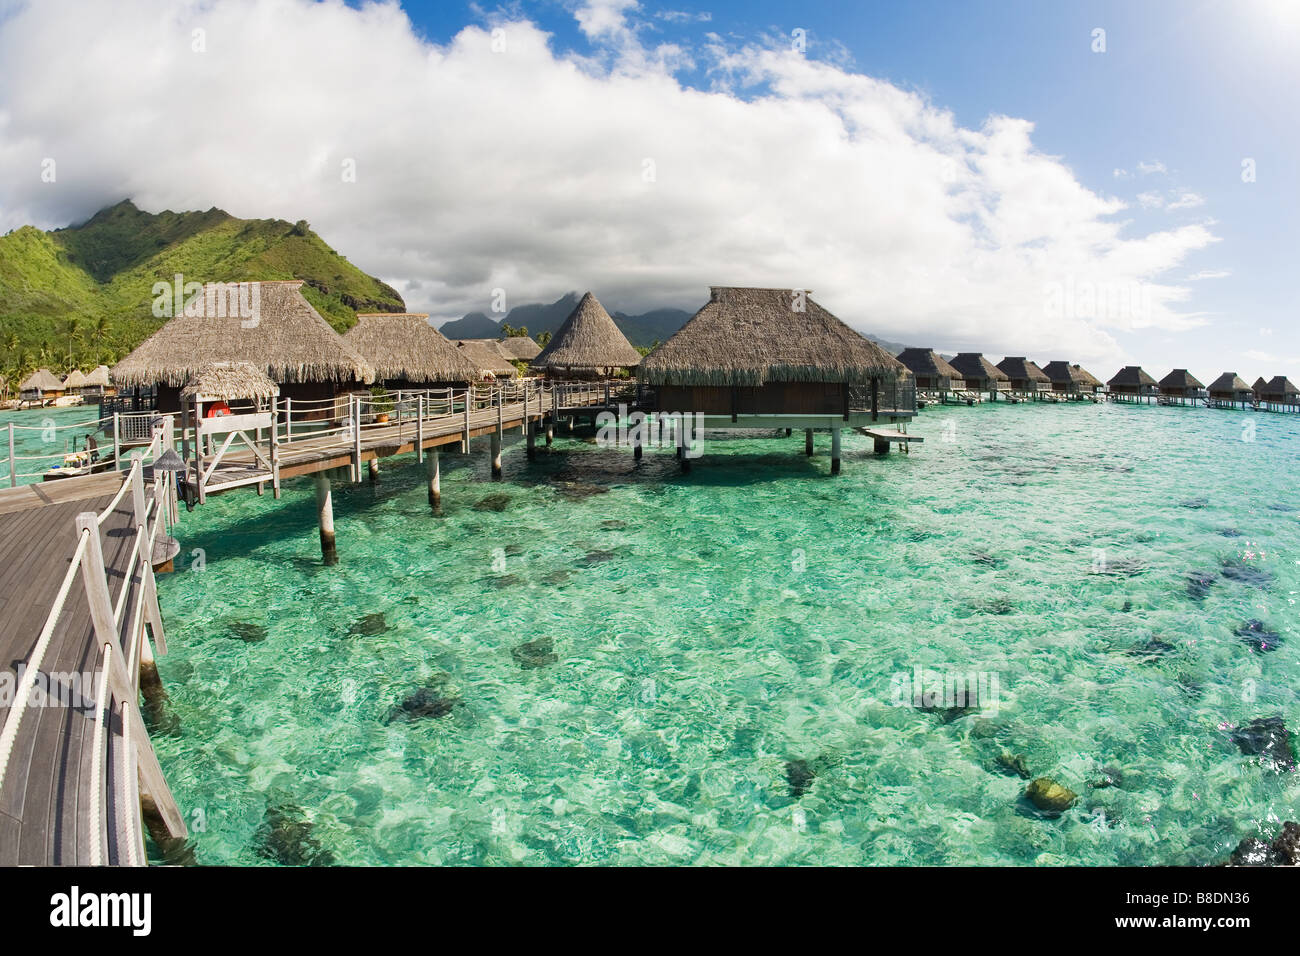 Holiday resort in moorea - Stock Image